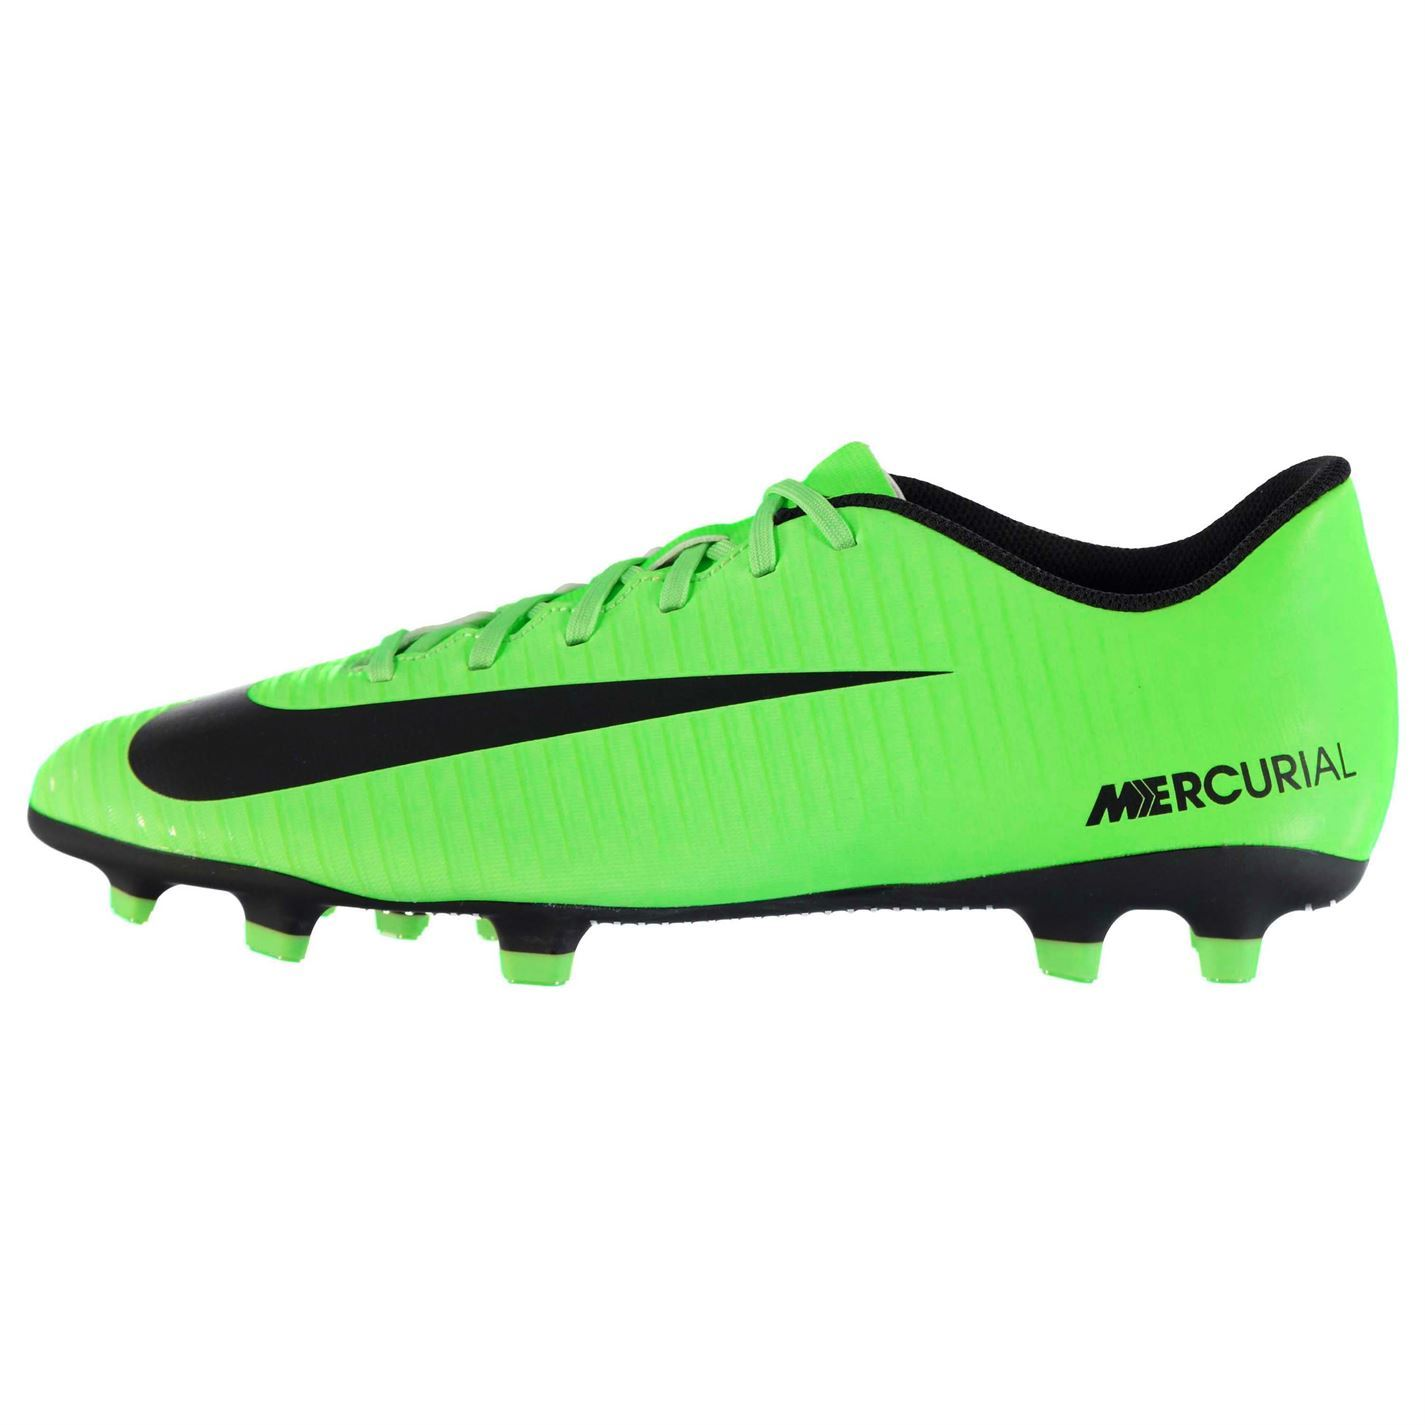 Details about Nike Mercurial Vortex FG Firm Ground Football Boots Mens  Grn Blk Soccer Shoes 4f8be18325